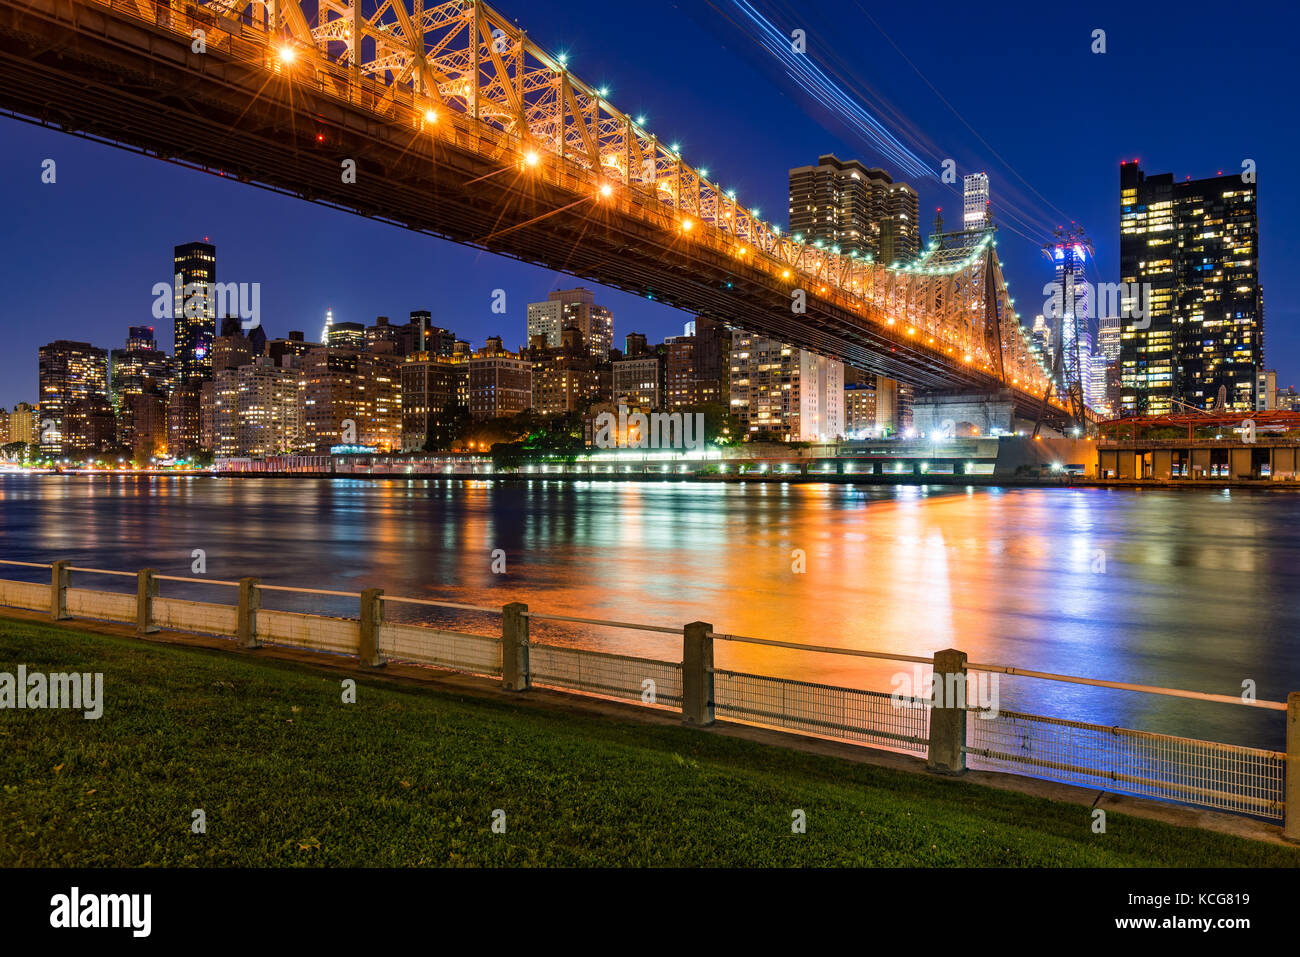 Soir vue de Manhattan Midtown East à partir de Roosevelt Island avec le Queensboro Bridge. New York City Photo Stock